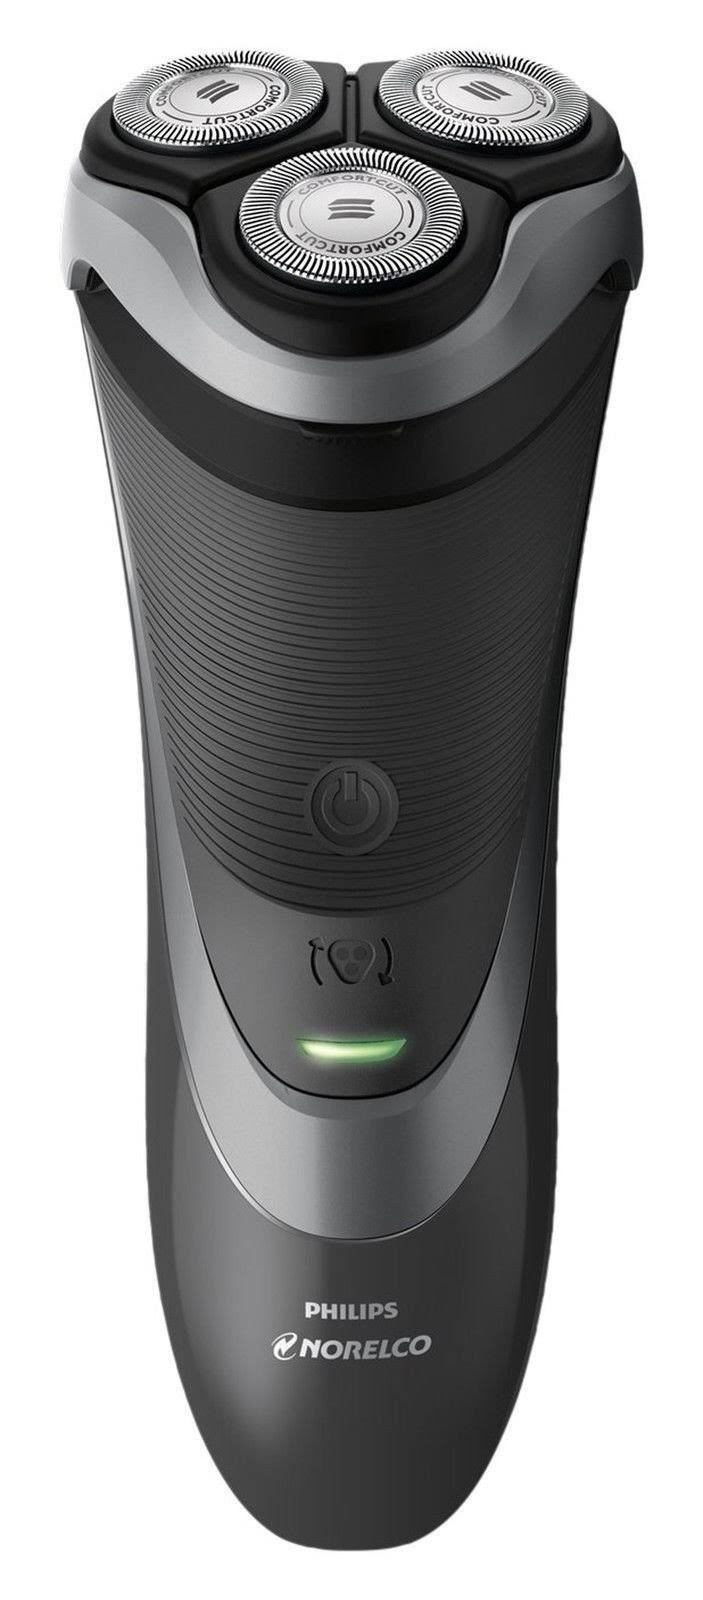 Philips Norelco S3560, 3500 Wet or Dry Lithium Power Shaver